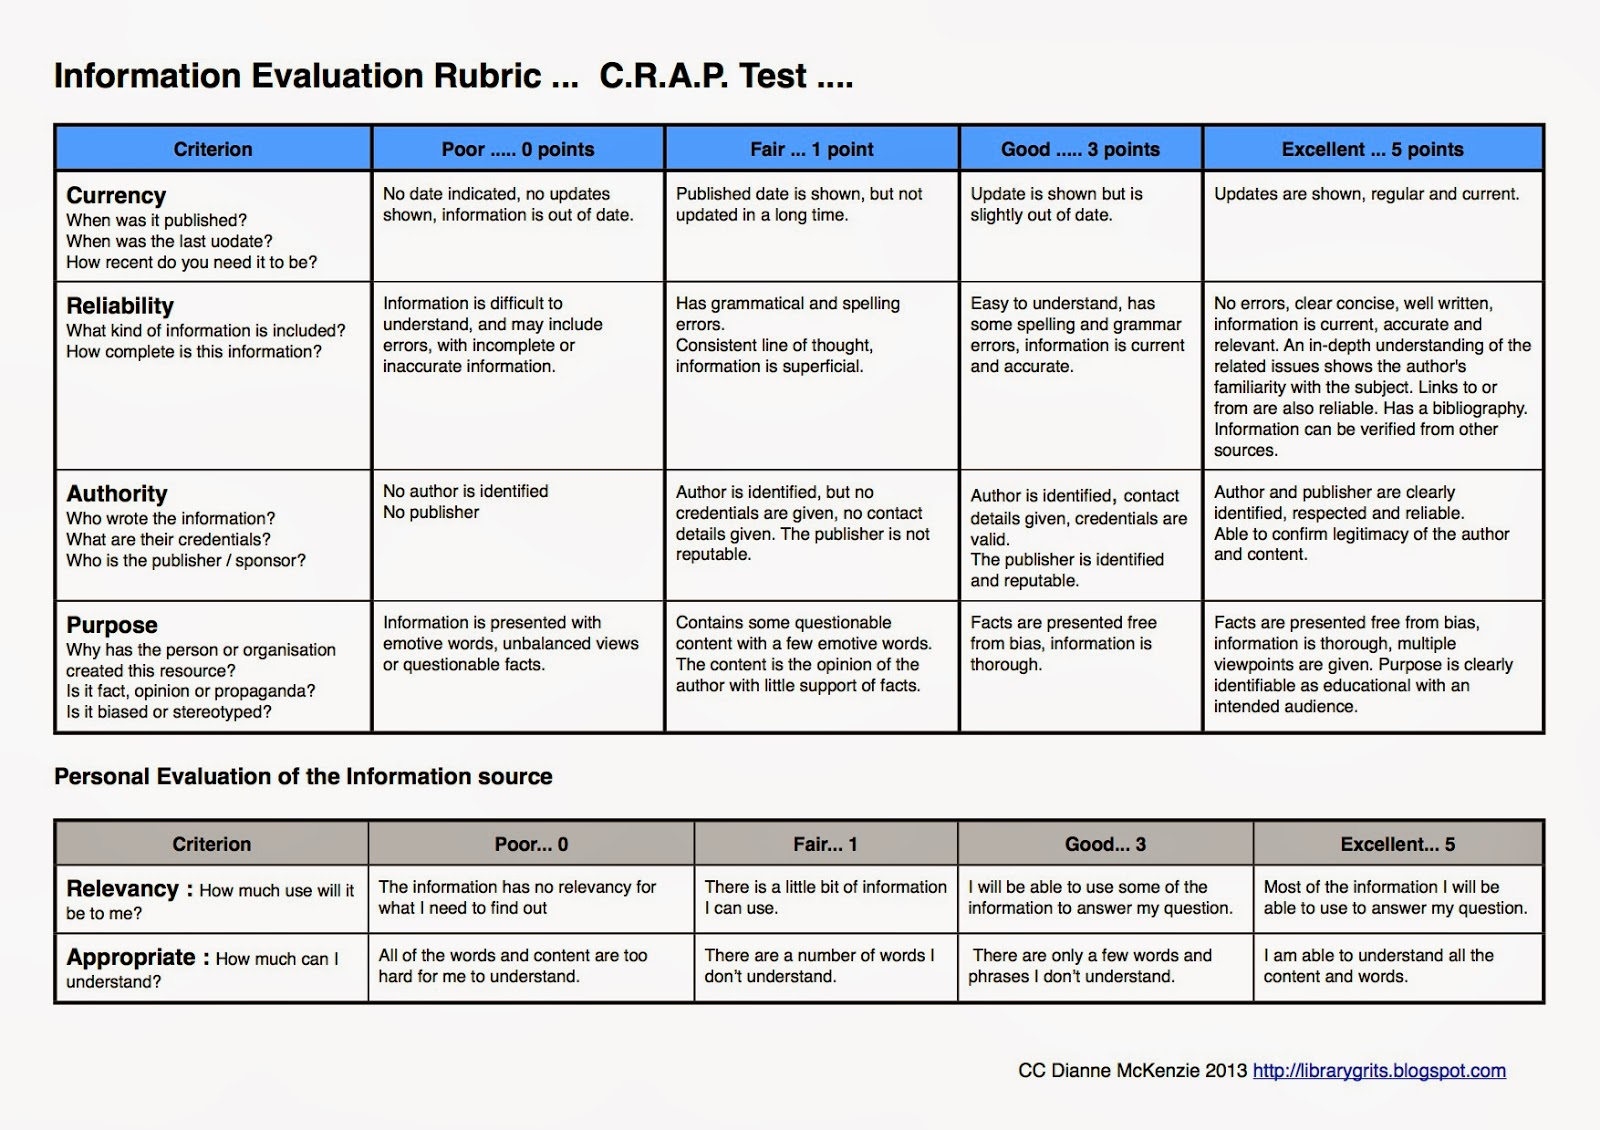 Library Grits The C R A P Test Rubric